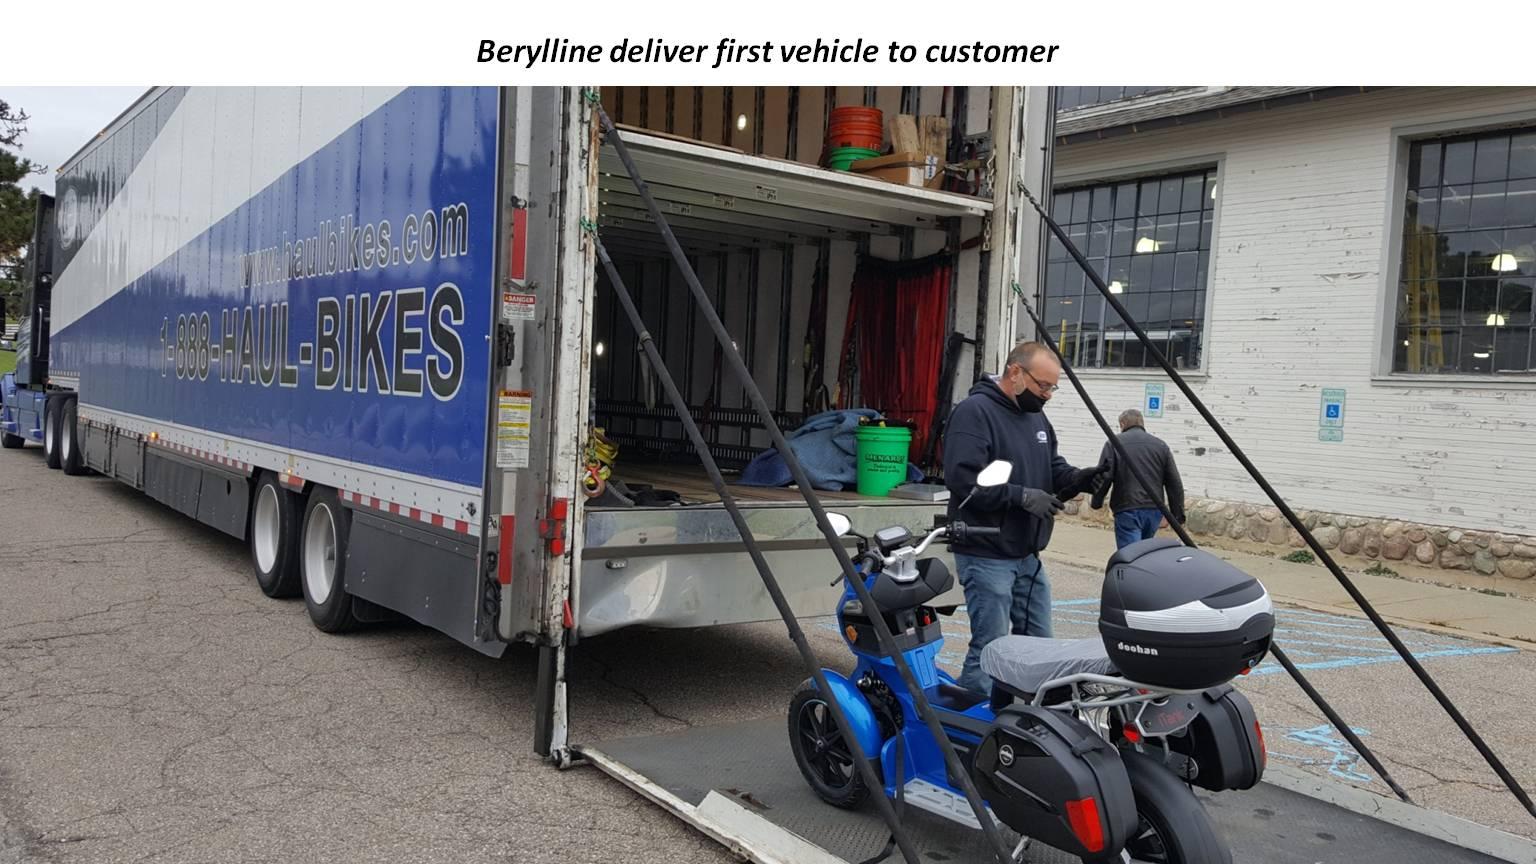 Berylline deliver first vehicle to customer